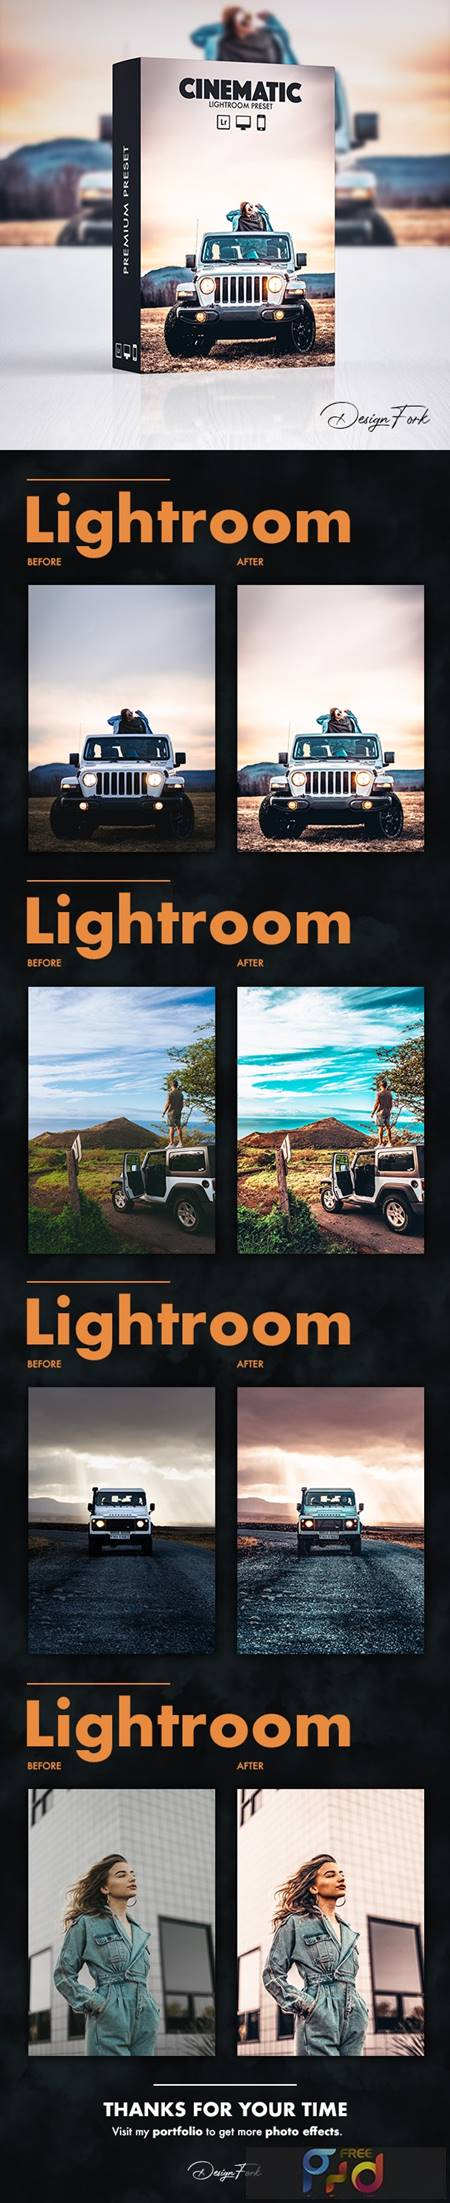 Cinematic FX Lightroom Preset 30121542 1